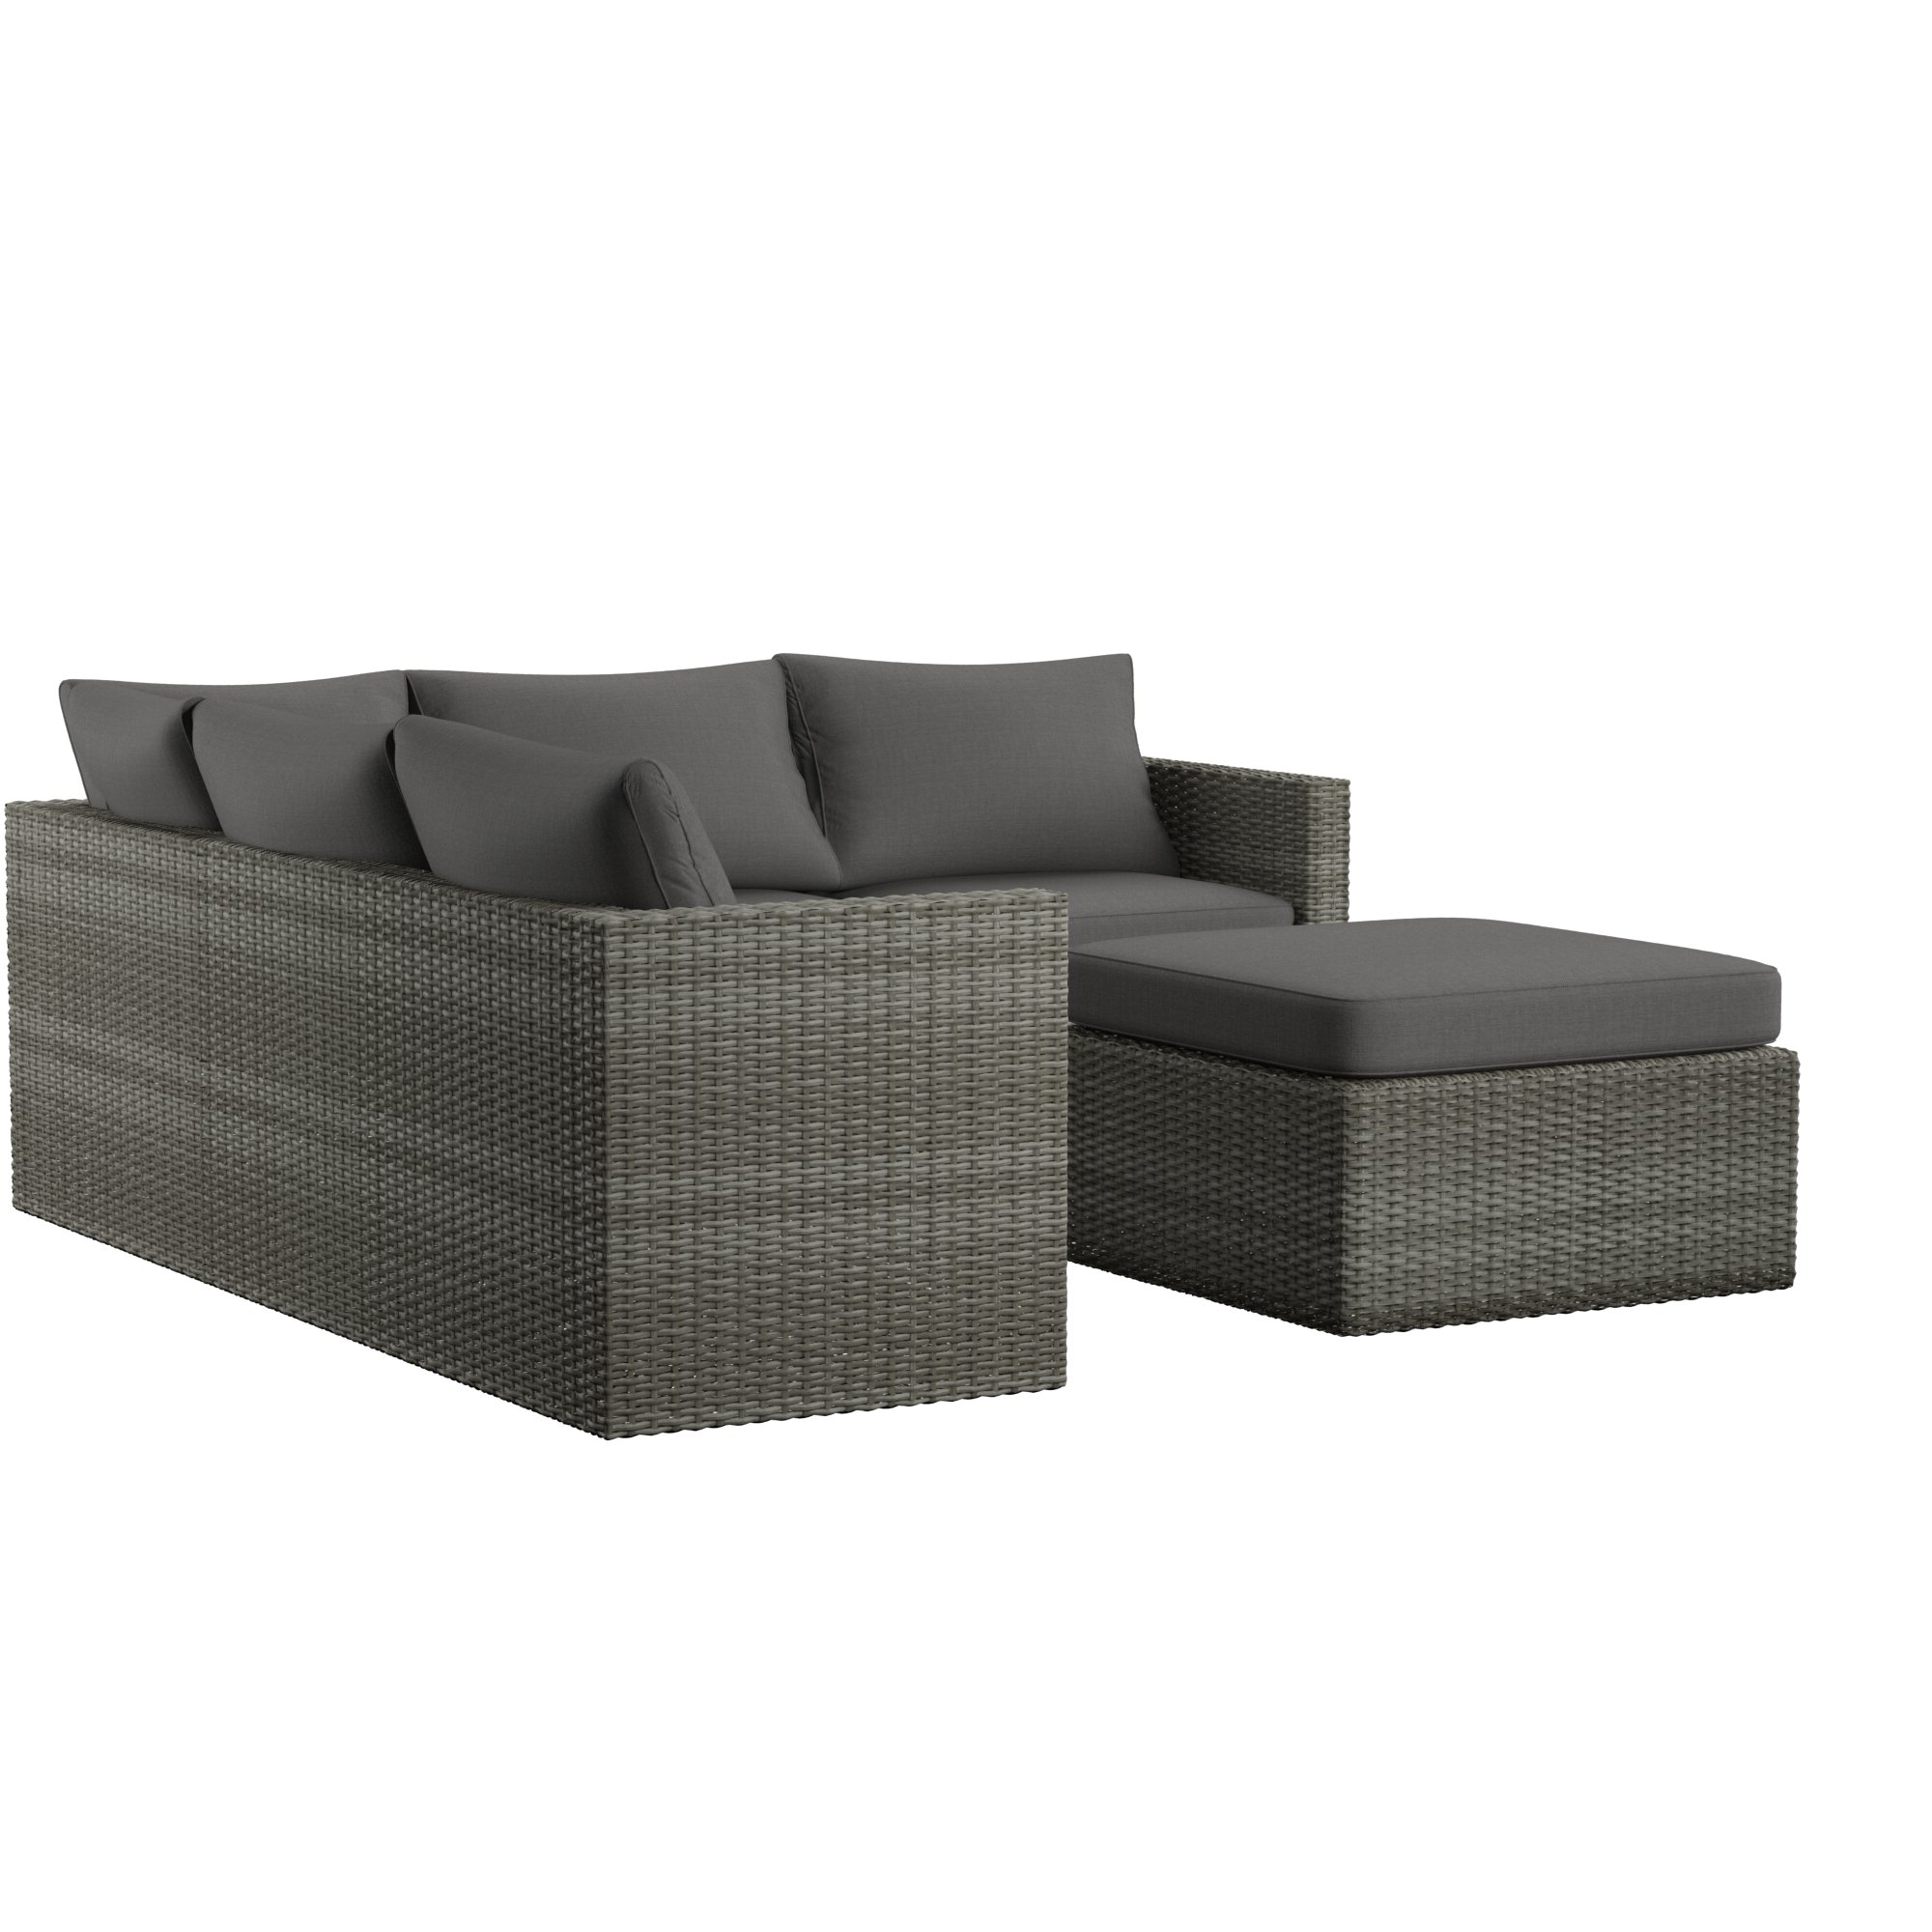 Popular Camak Patio Sofas With Cushions Inside Lorentzen Patio Sectional With Cushions (Gallery 12 of 20)